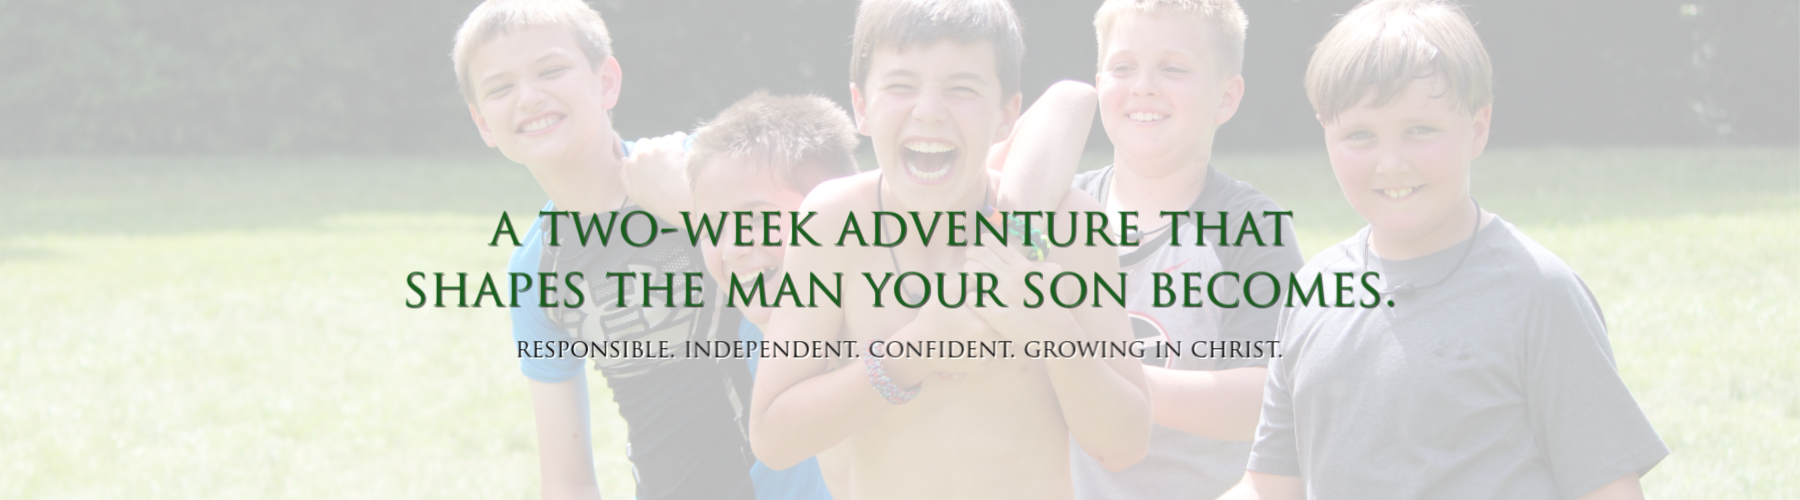 Ridgecrest Christian Summer Camps for Boys | Located in the Blue